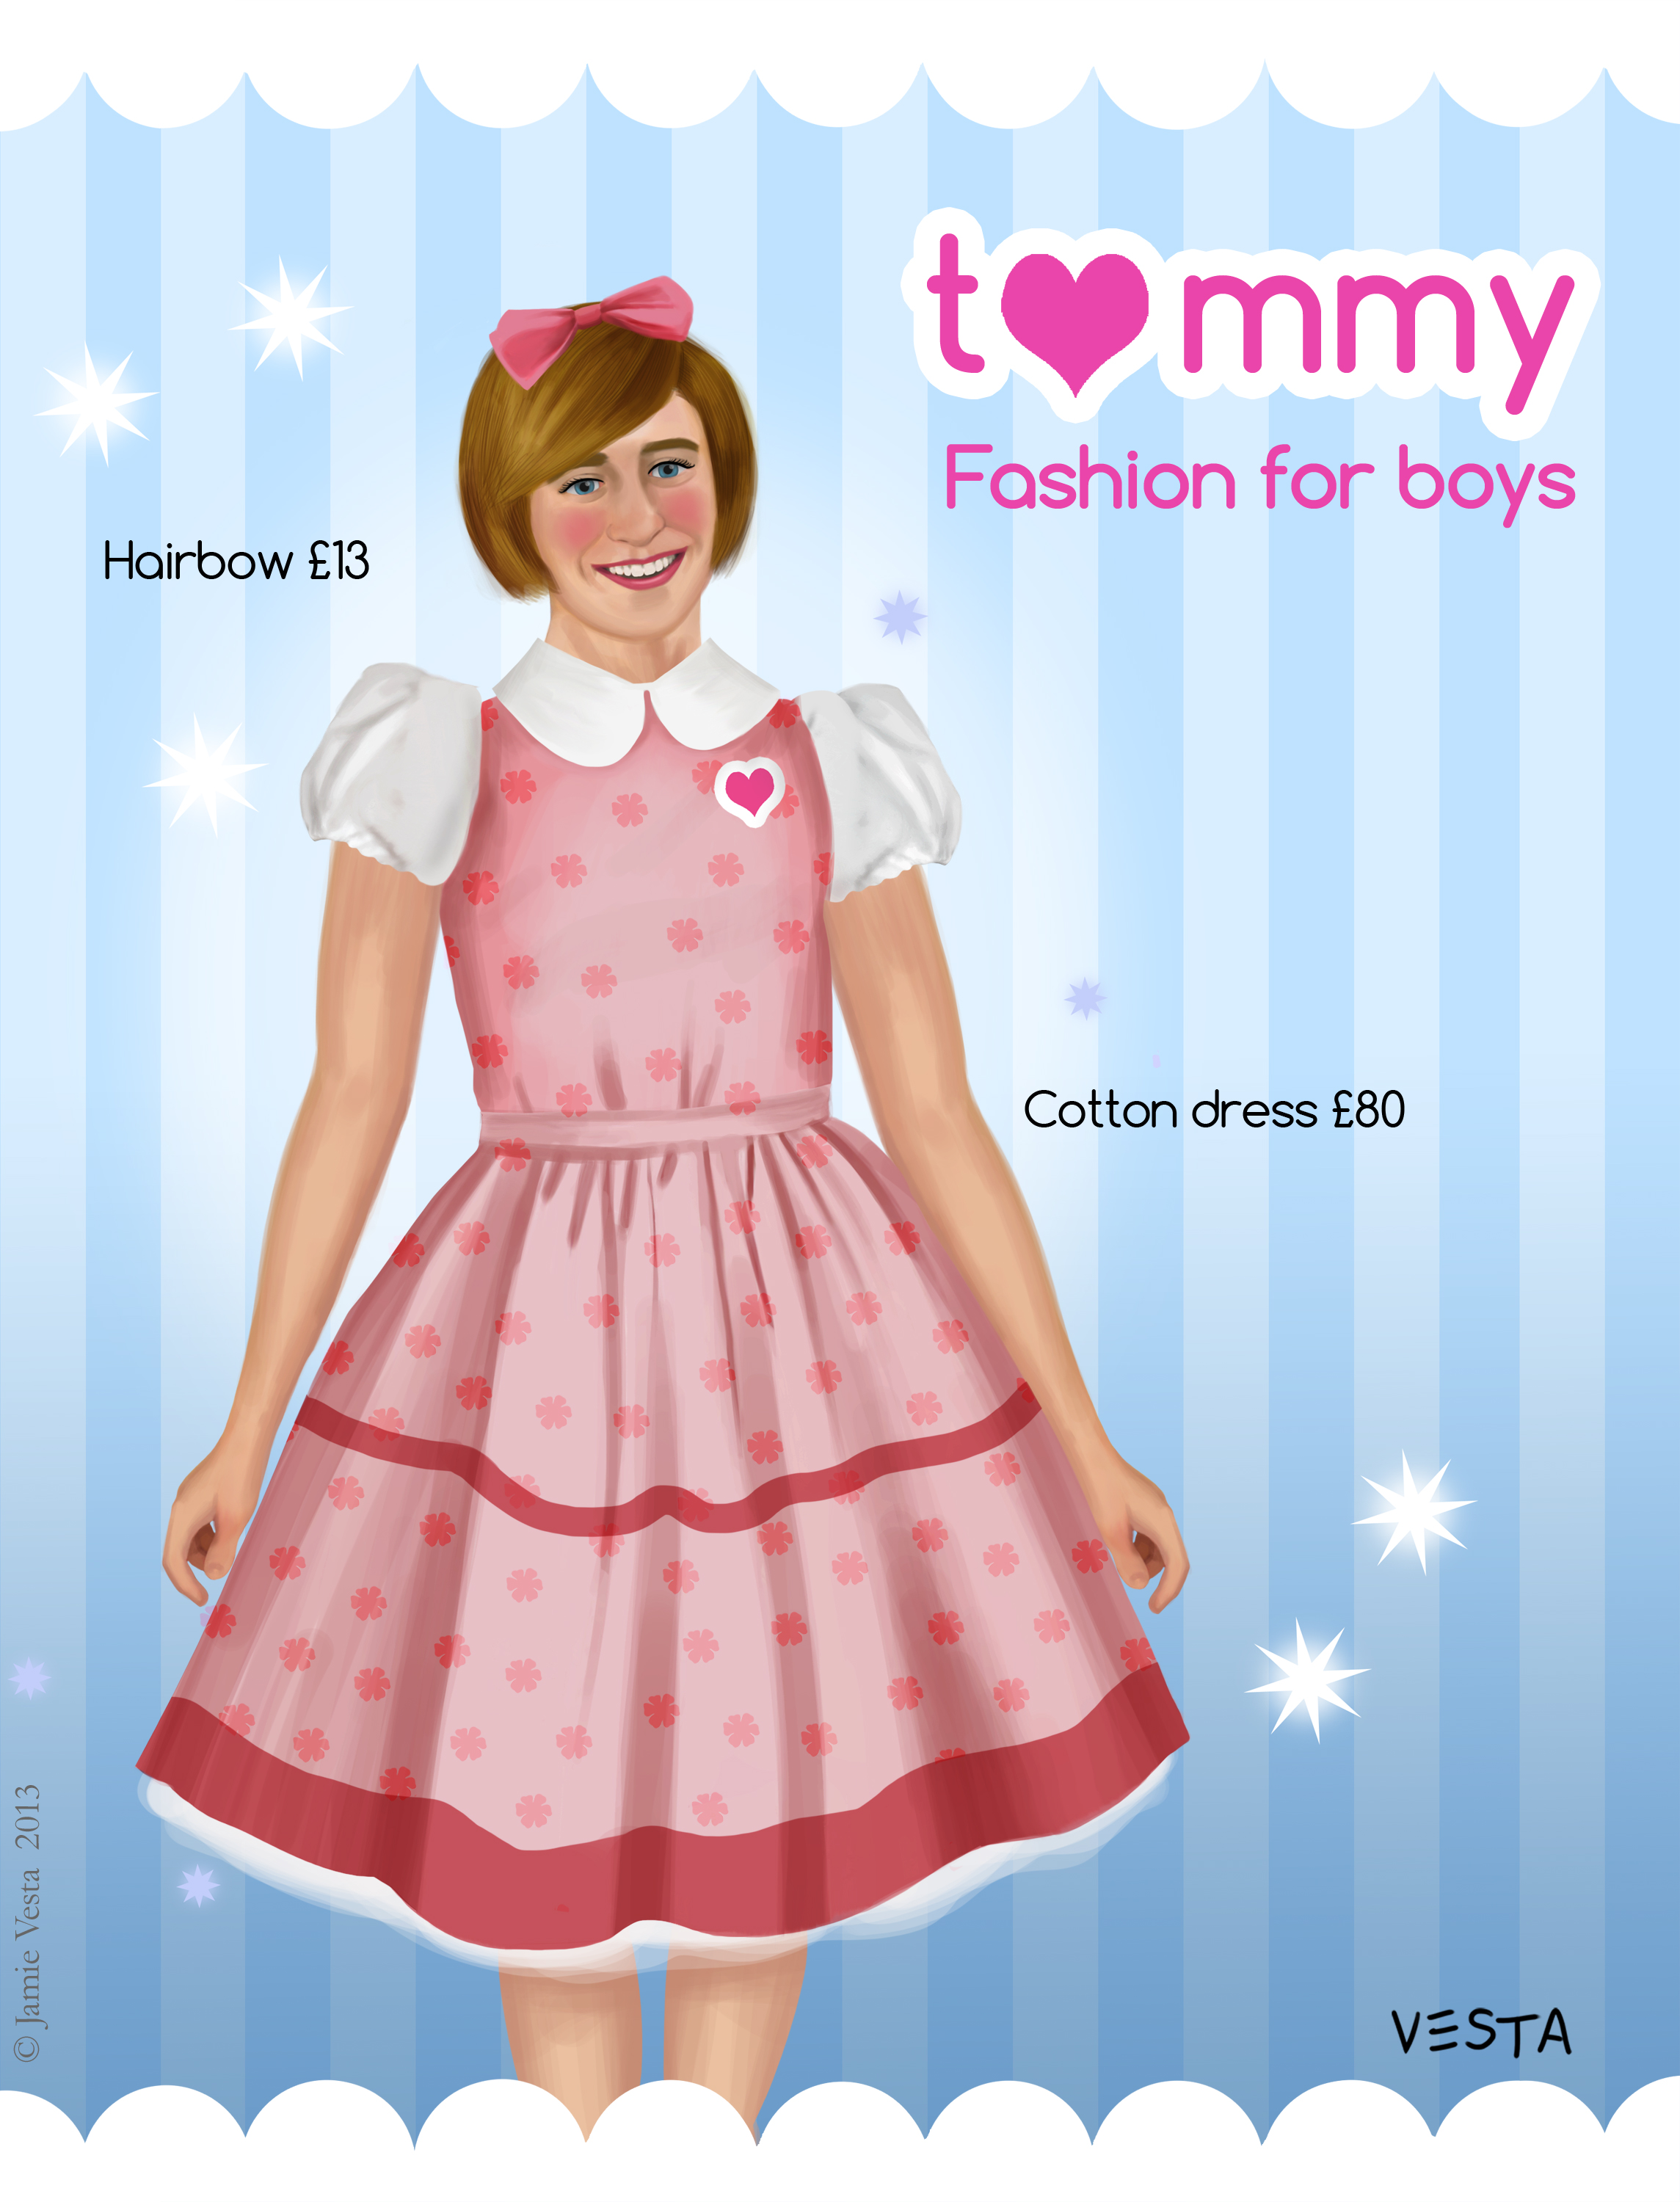 Boy In Pink Dress & How To Look Good 2017-2018